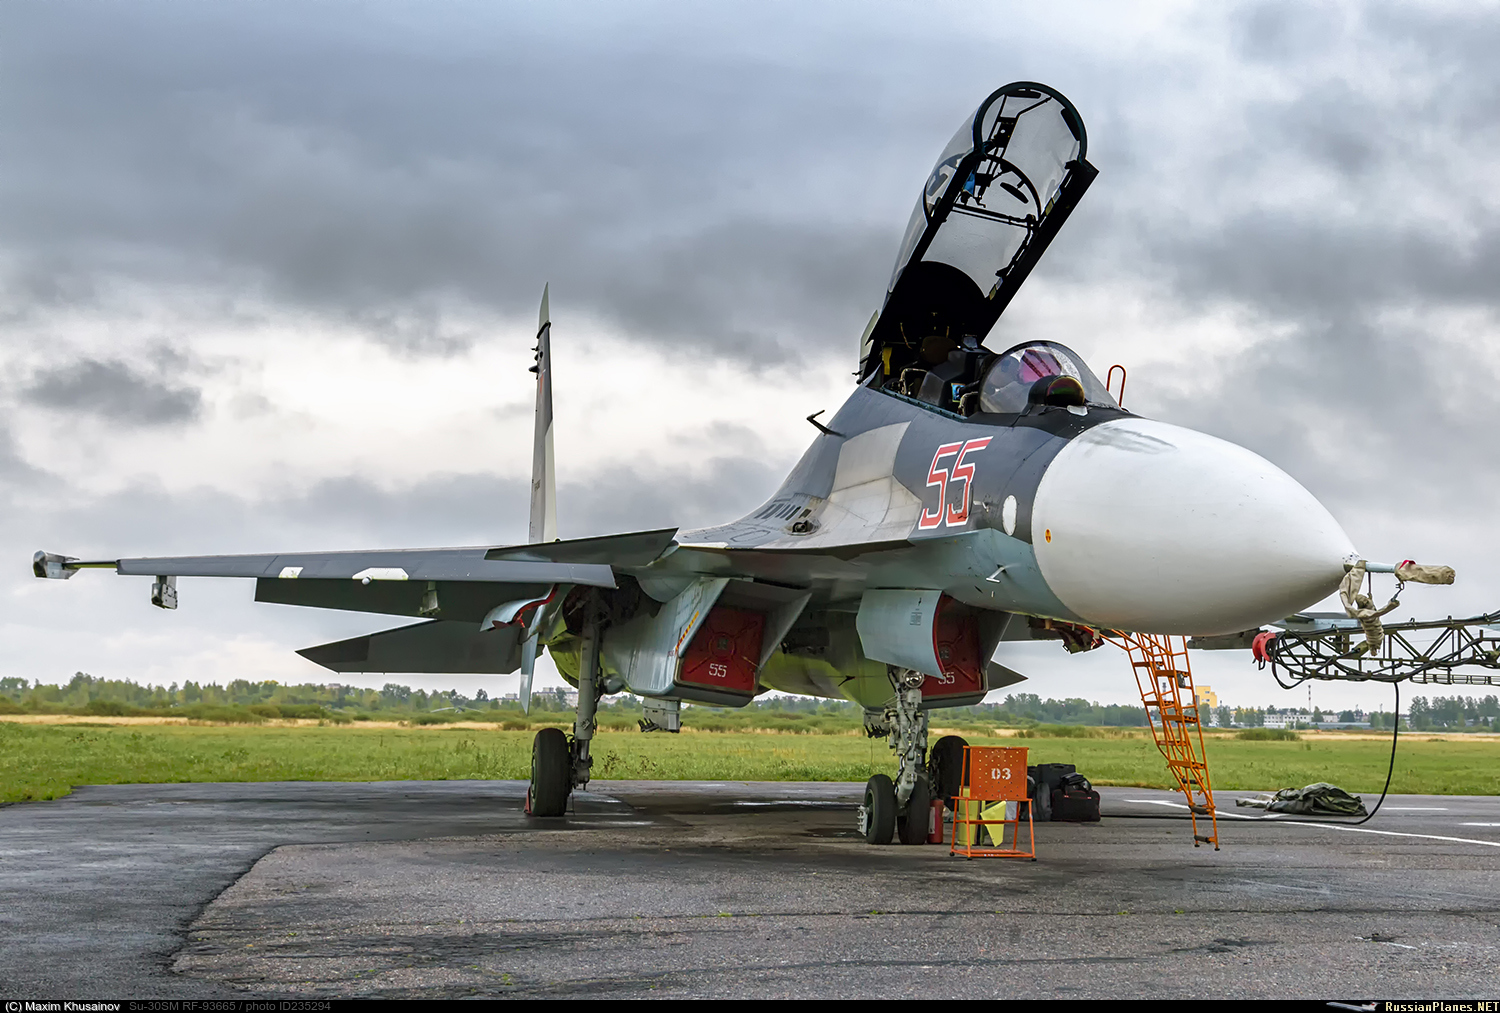 https://russianplanes.net/images/to236000/235294.jpg